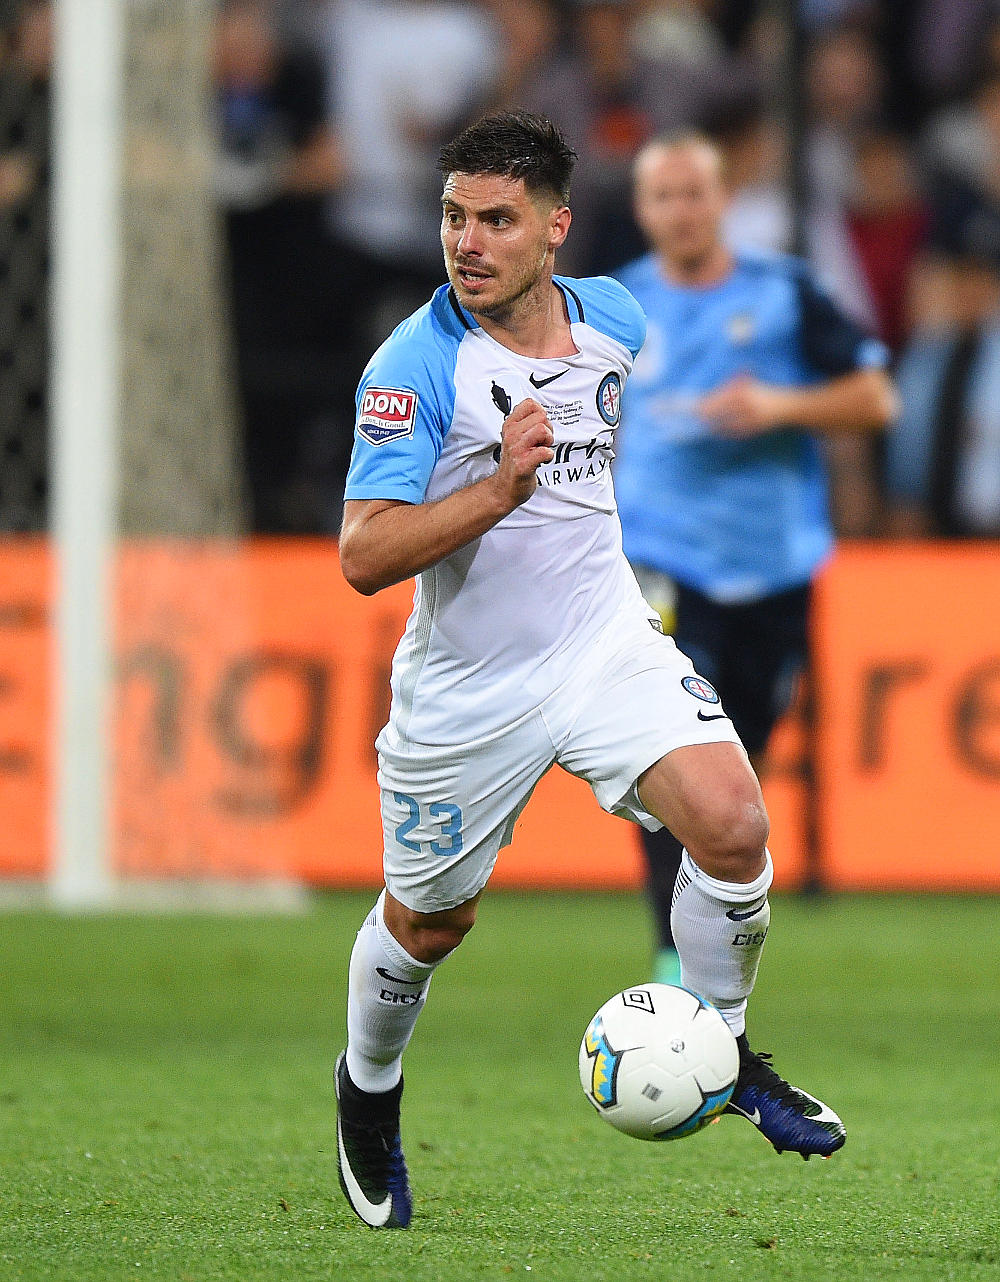 Brun Fornaroli dribbles the ball